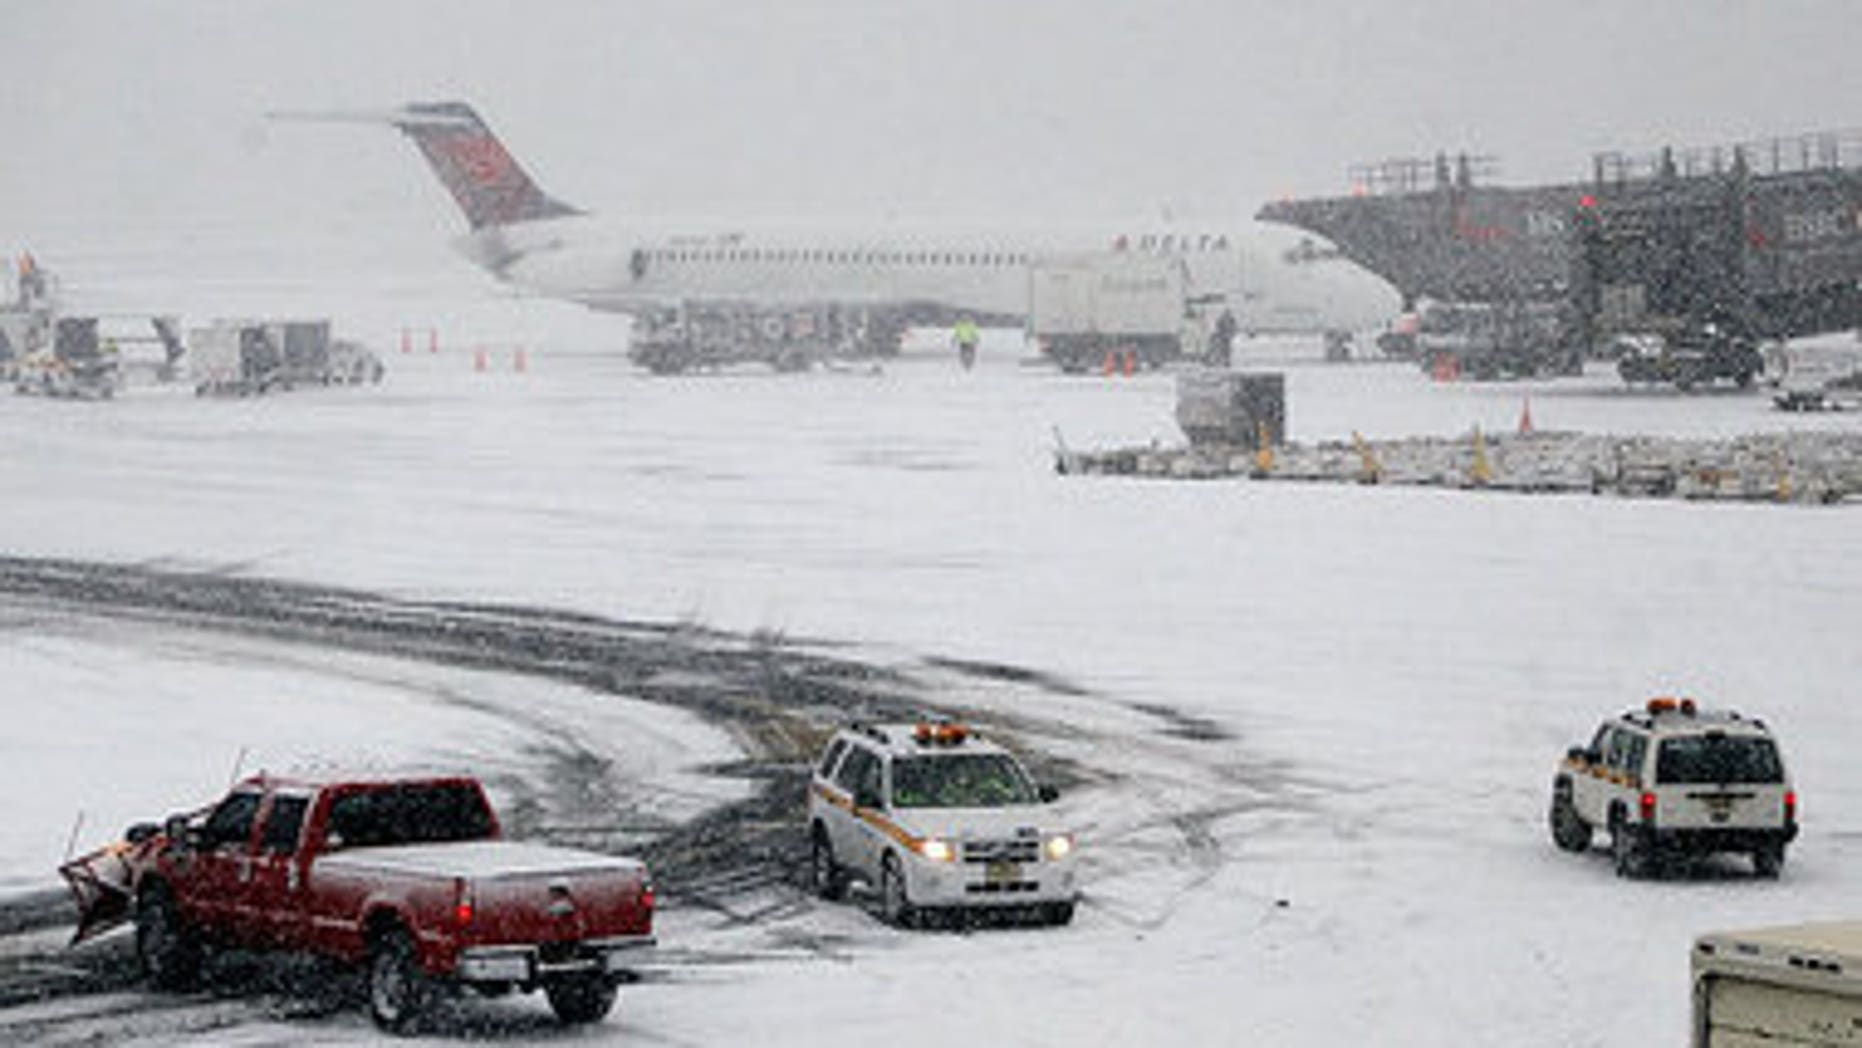 Don't get stranded at the airport due to inclement weather without a backup plan.